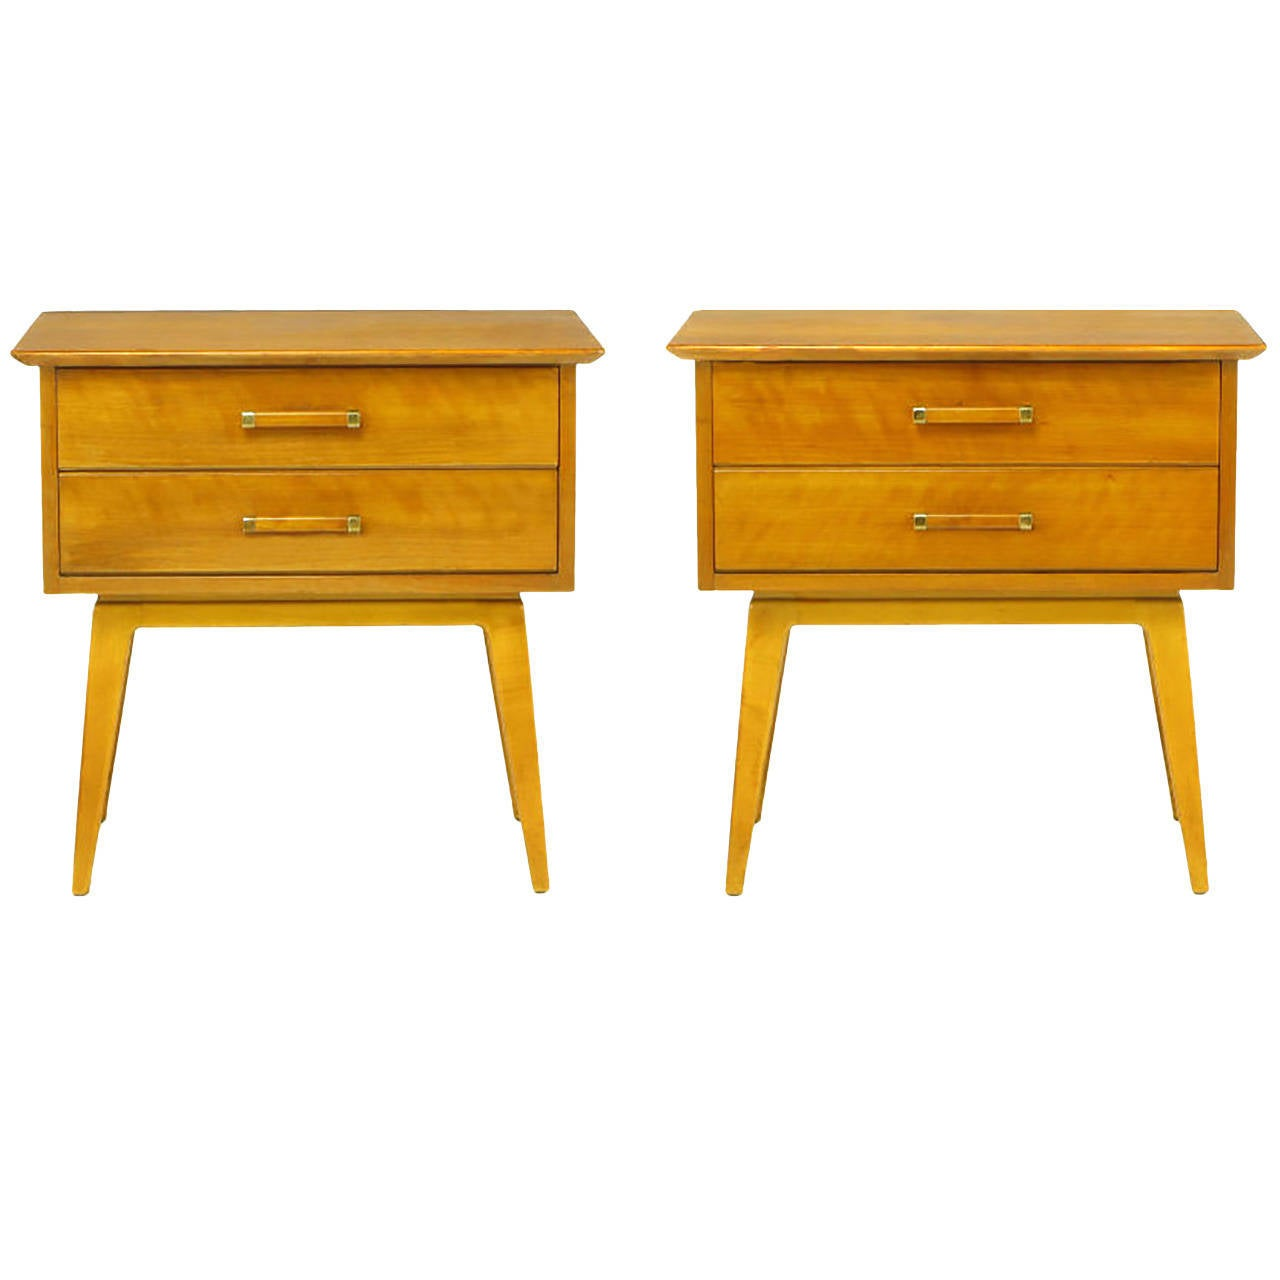 Pair of Renzo Rutili Two-Drawer Nightstands in Bleached Walnut